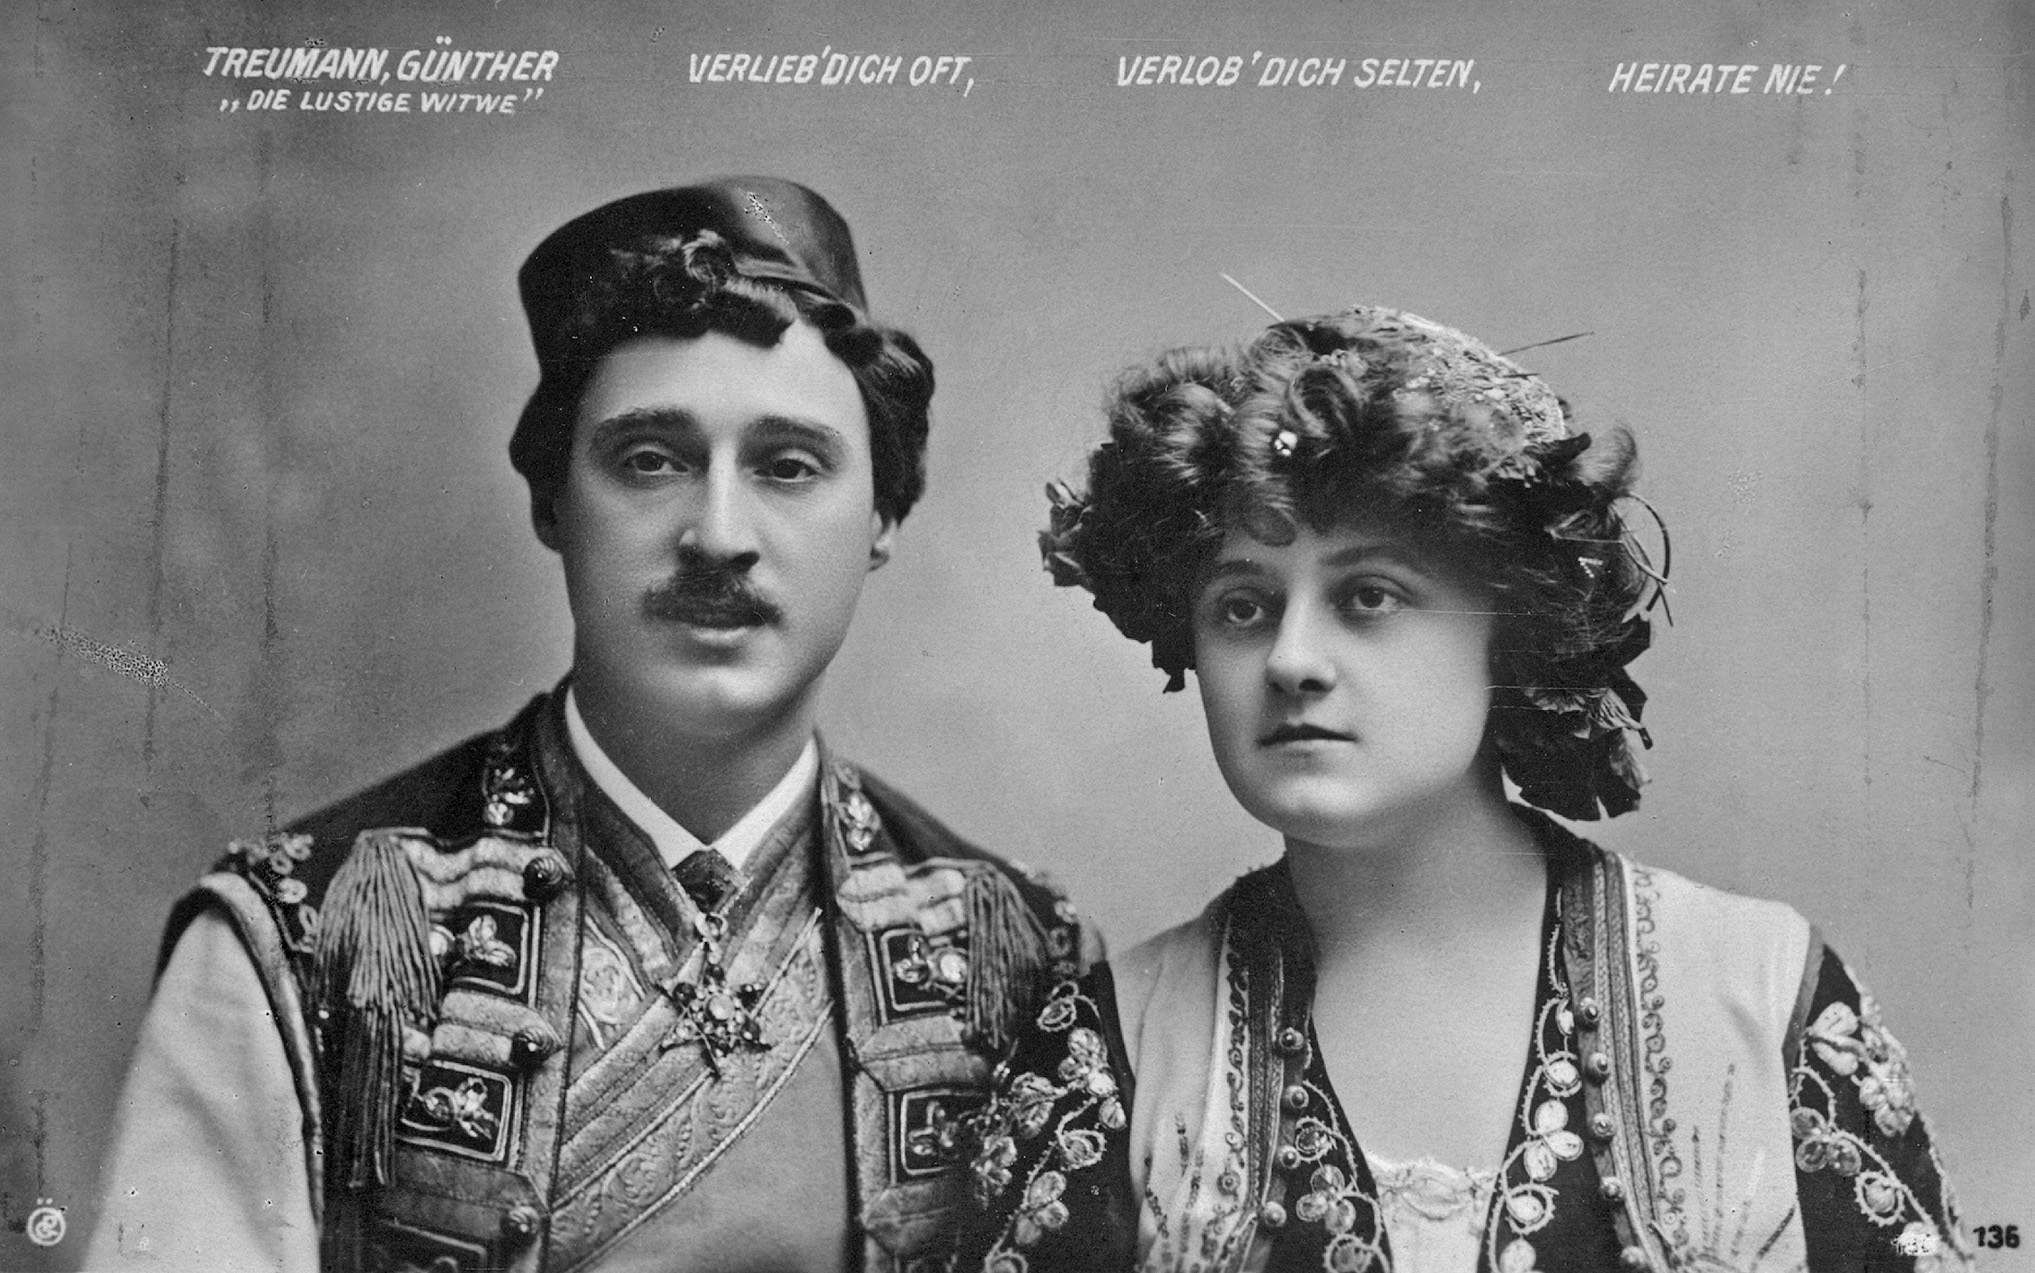 "The original Viennese starts of ""Die lustige Witwe"", Mizzi Günther and Louis Treumann."